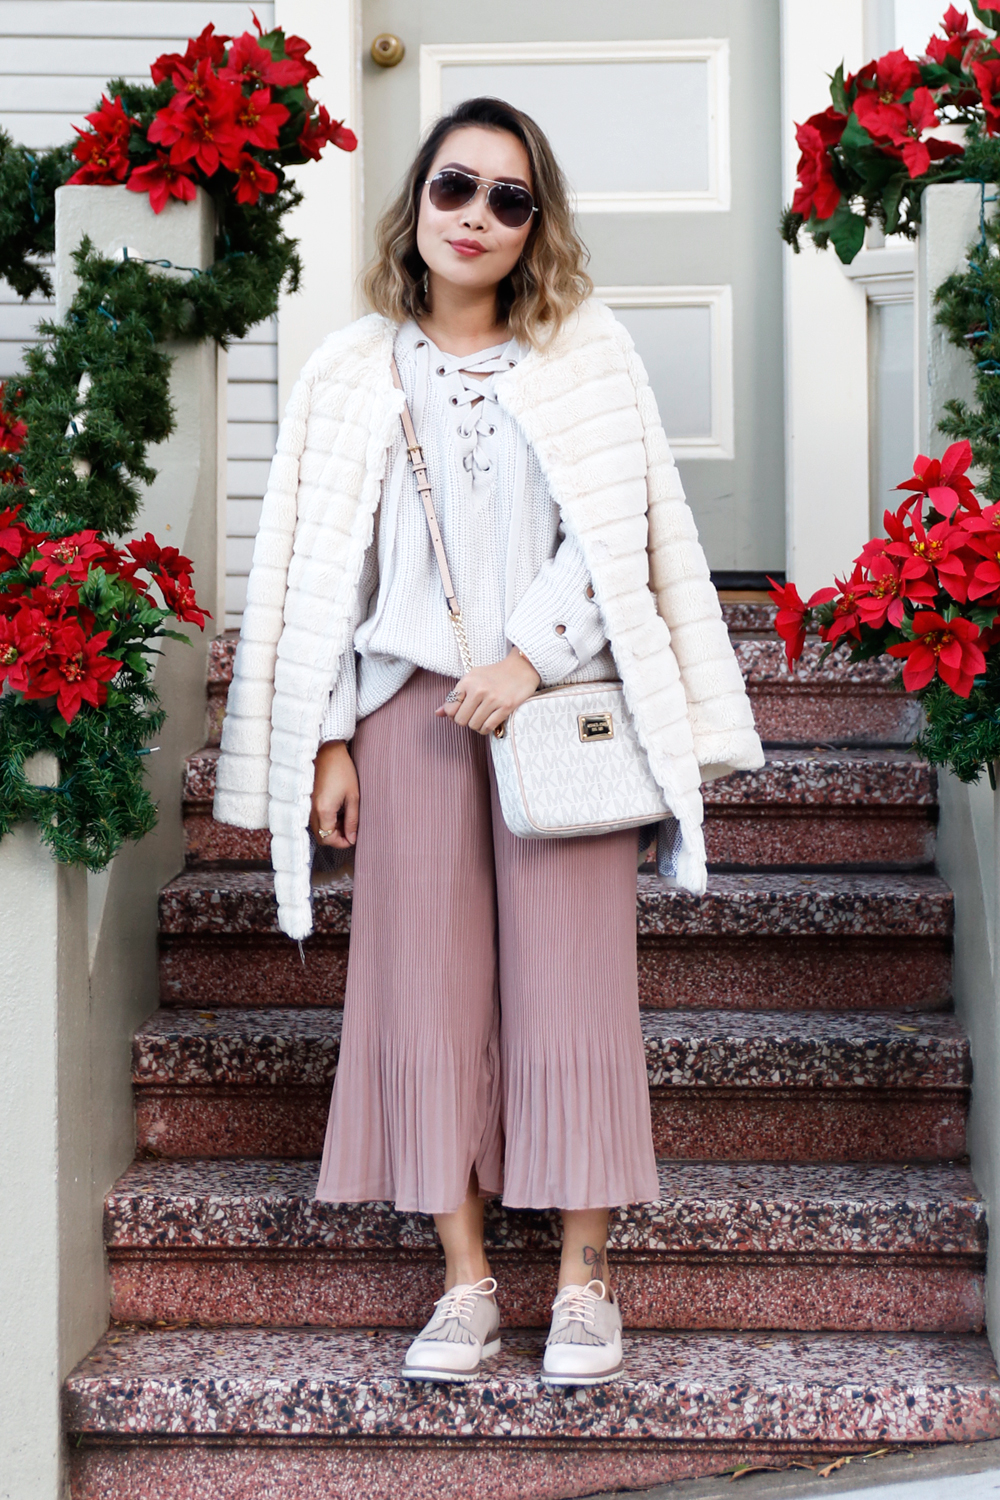 05holiday-christmas-neutral-pastel-sf-sanfrancisco-fashion-style